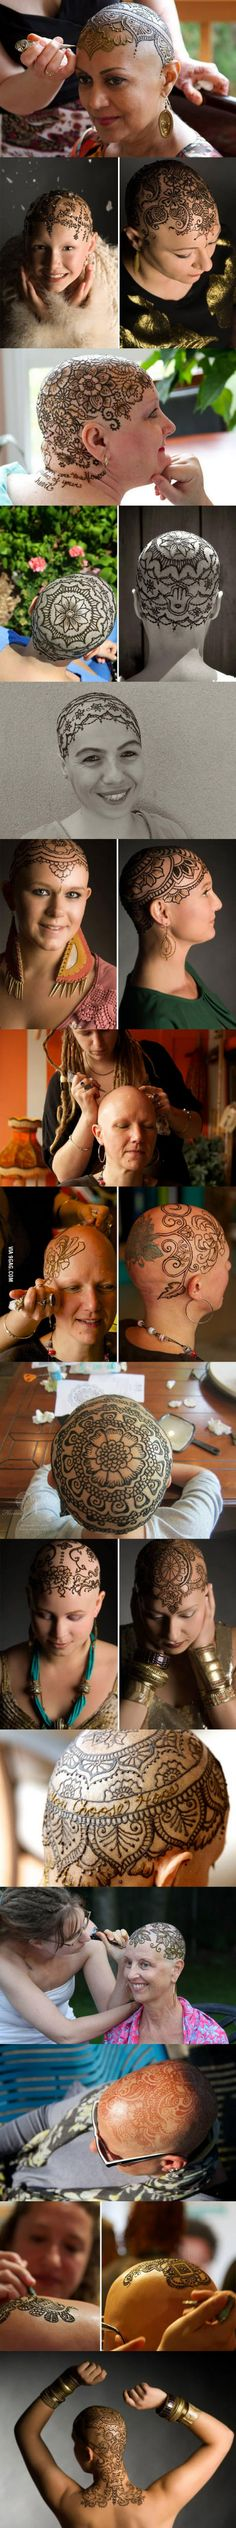 I think I just found my next volunteer opportunity. Elegant Henna Tattoo Crowns Help Cancer Patients Cope With Their Hair Loss.